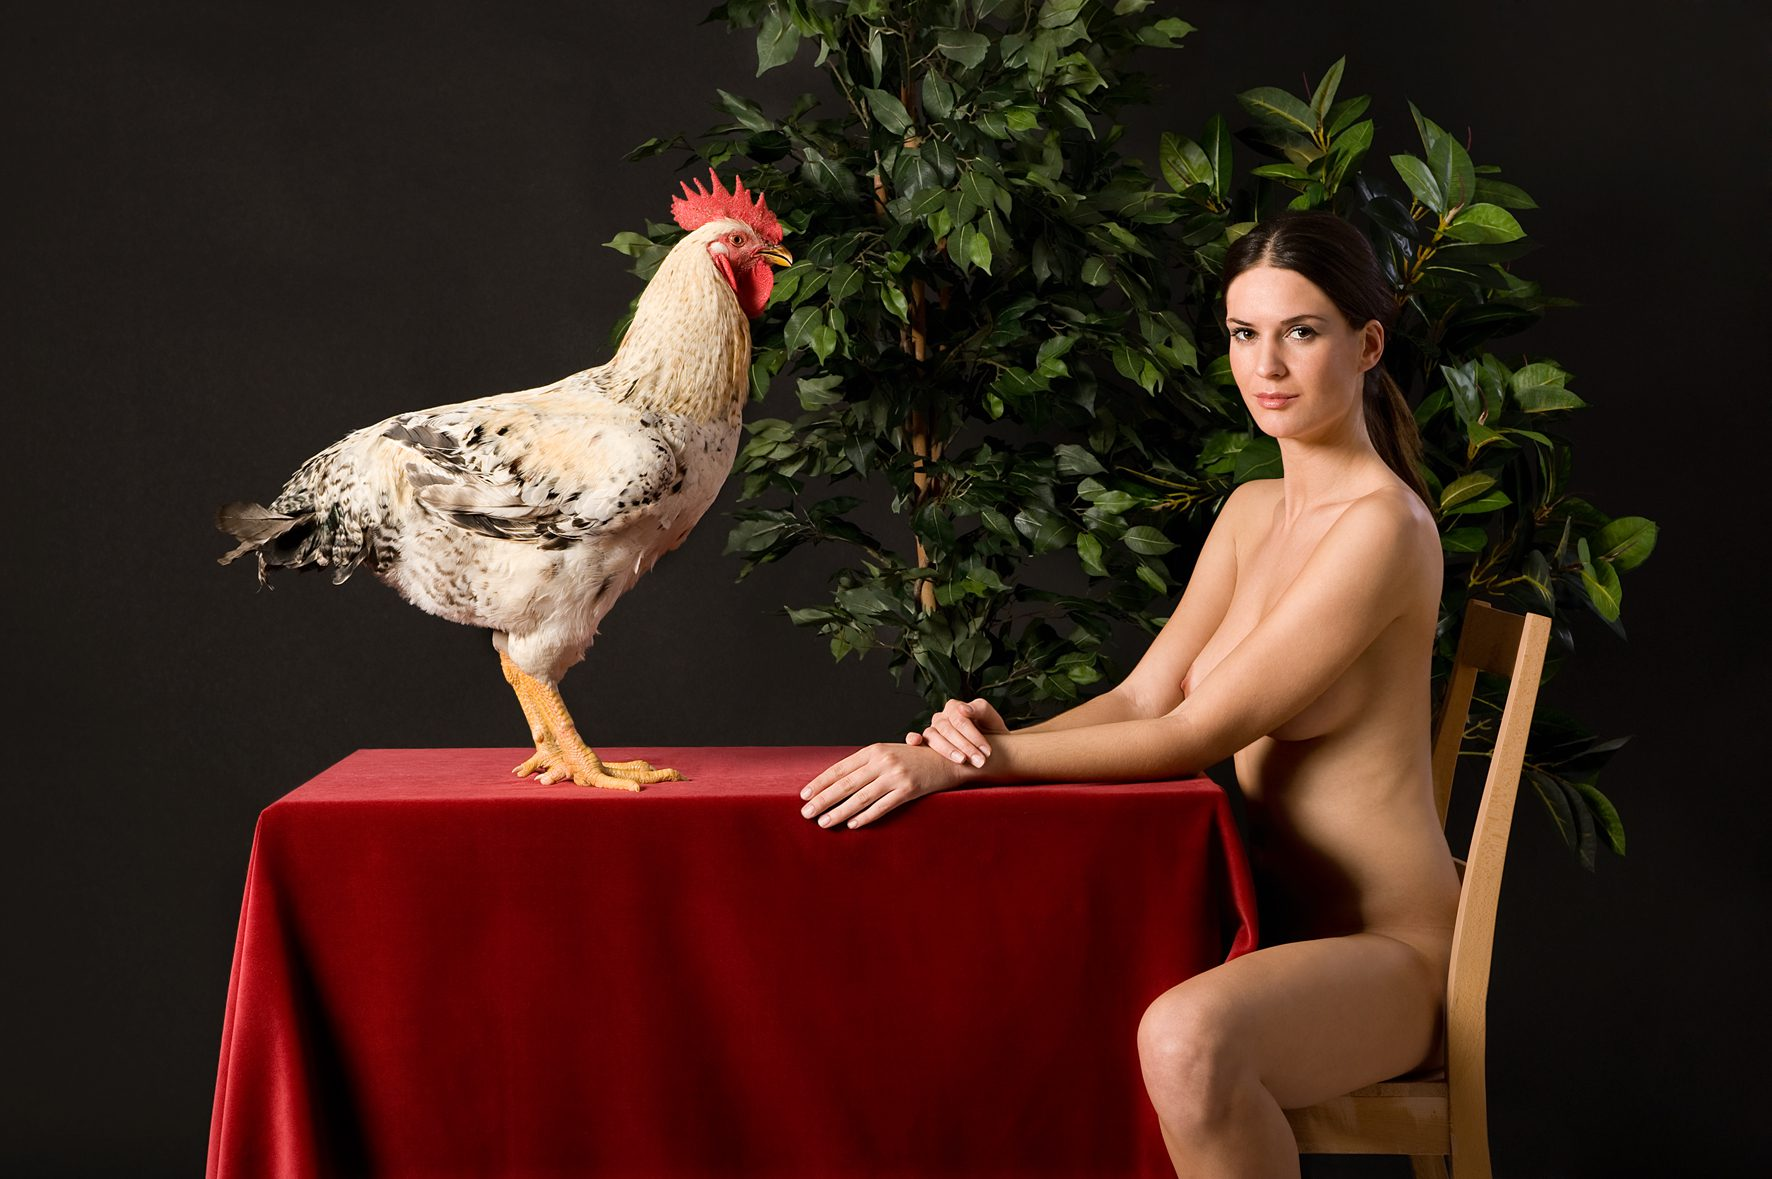 Untitled, For a Definition of The Nude Series (Woman w/ Rooster)